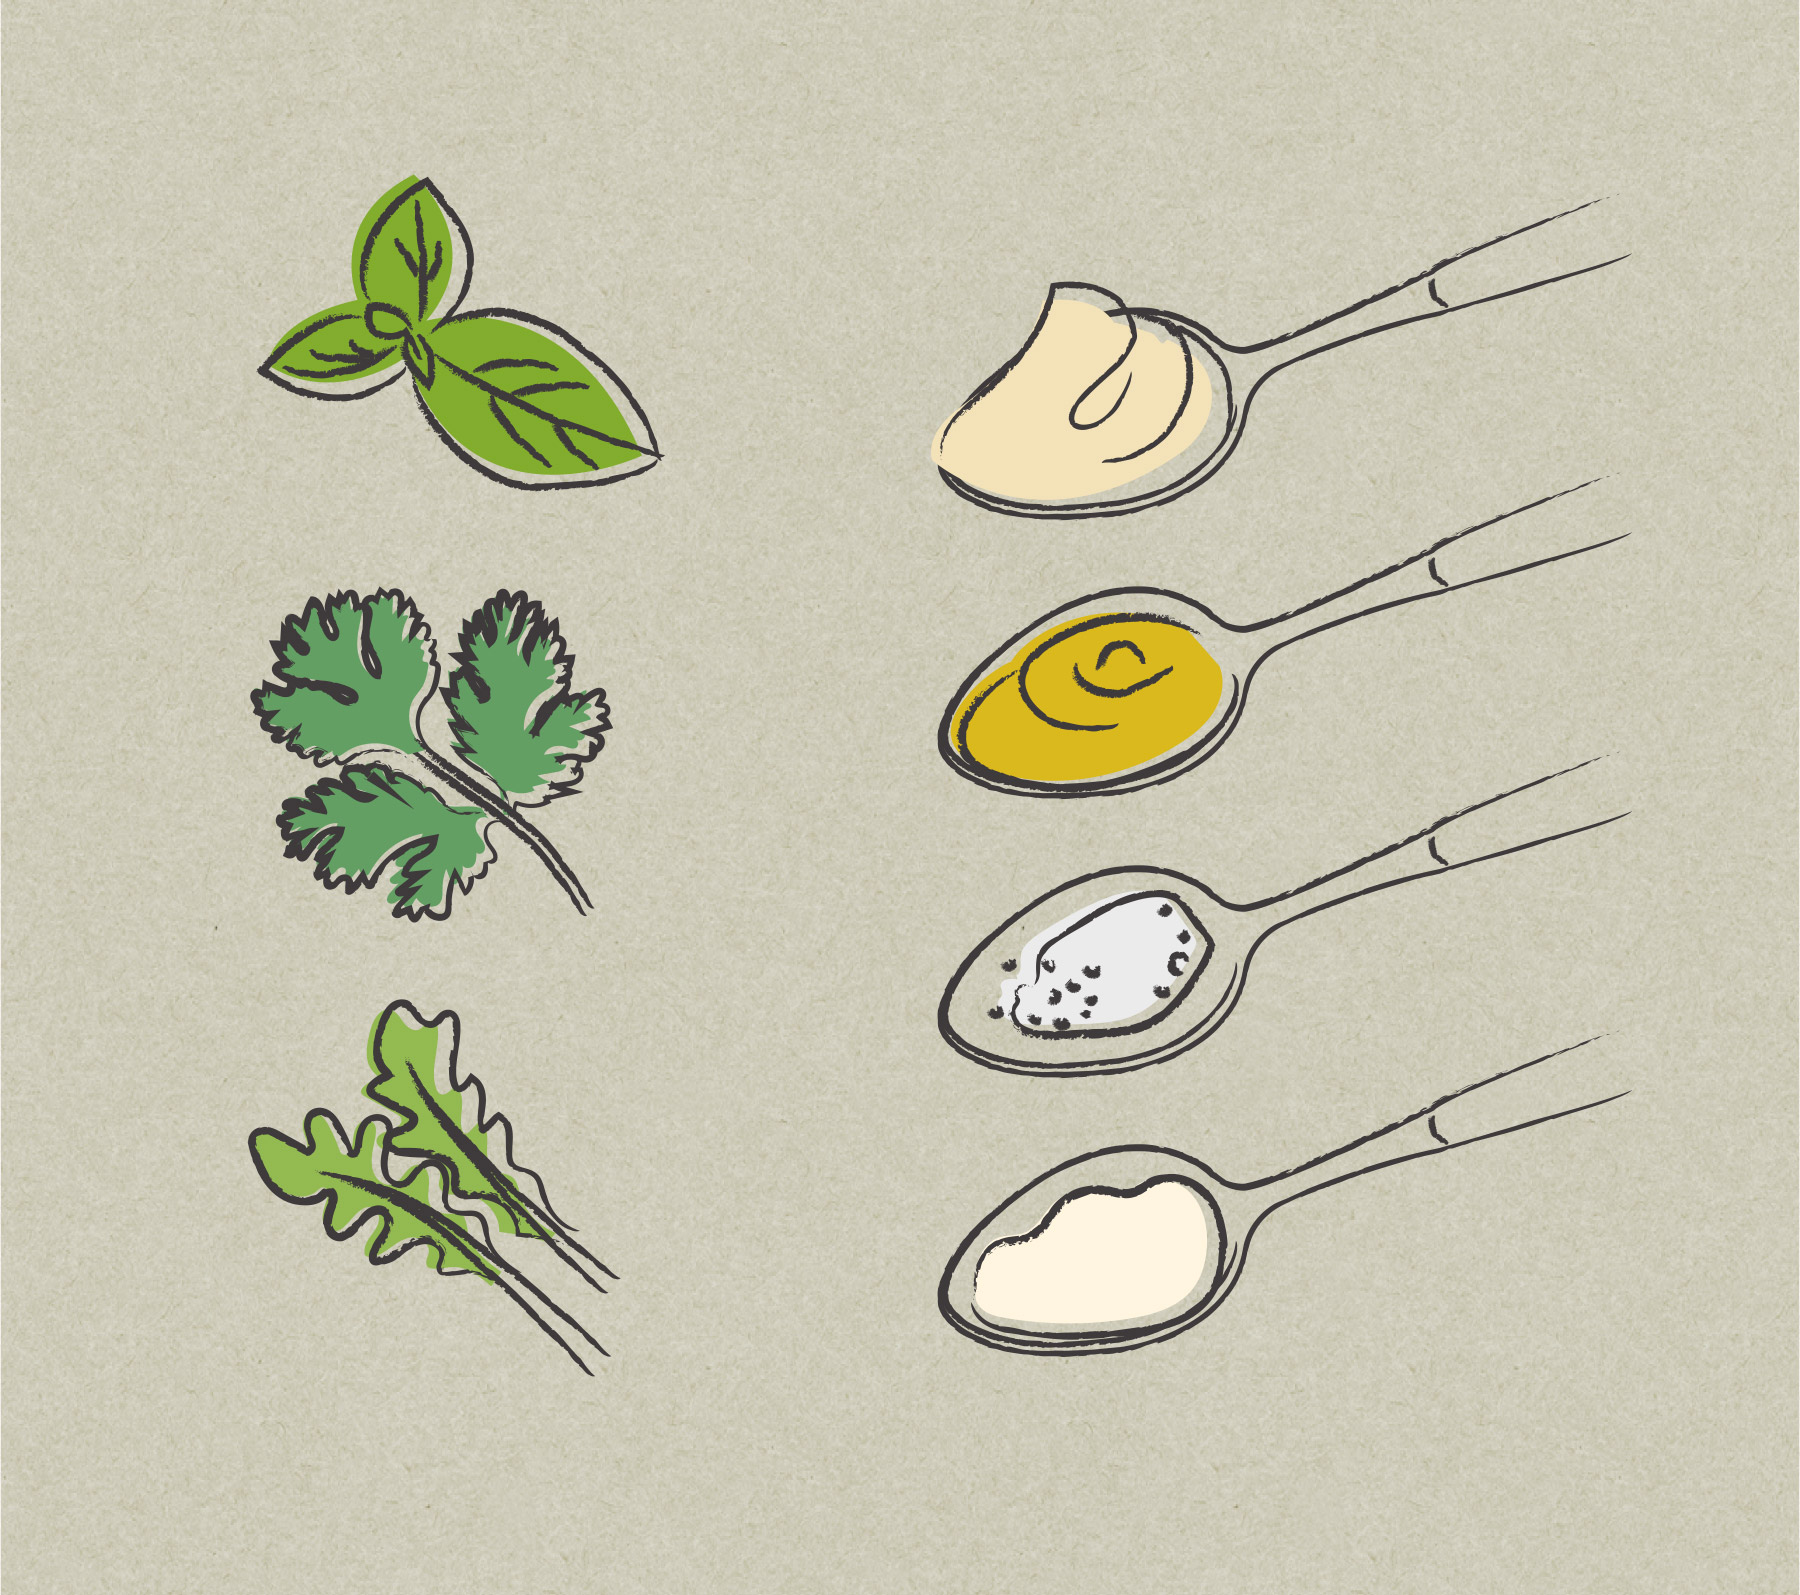 Illustrations of spices and herbs